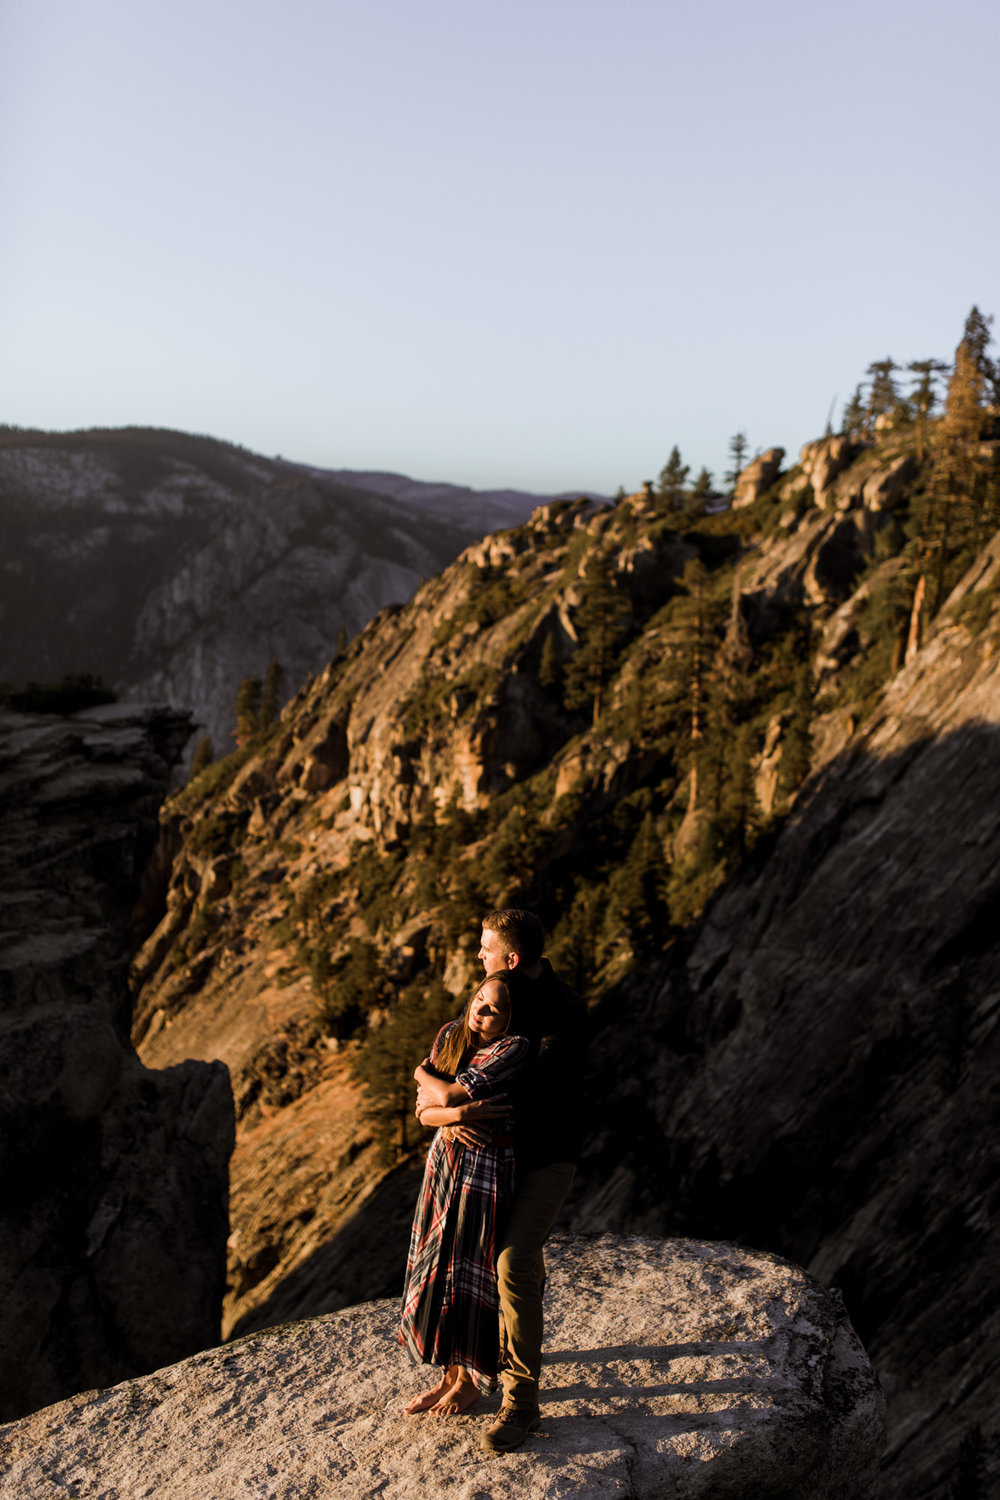 Yosemite National Park anniversary photo session // california adventure wedding photographer // www.abbihearne.com